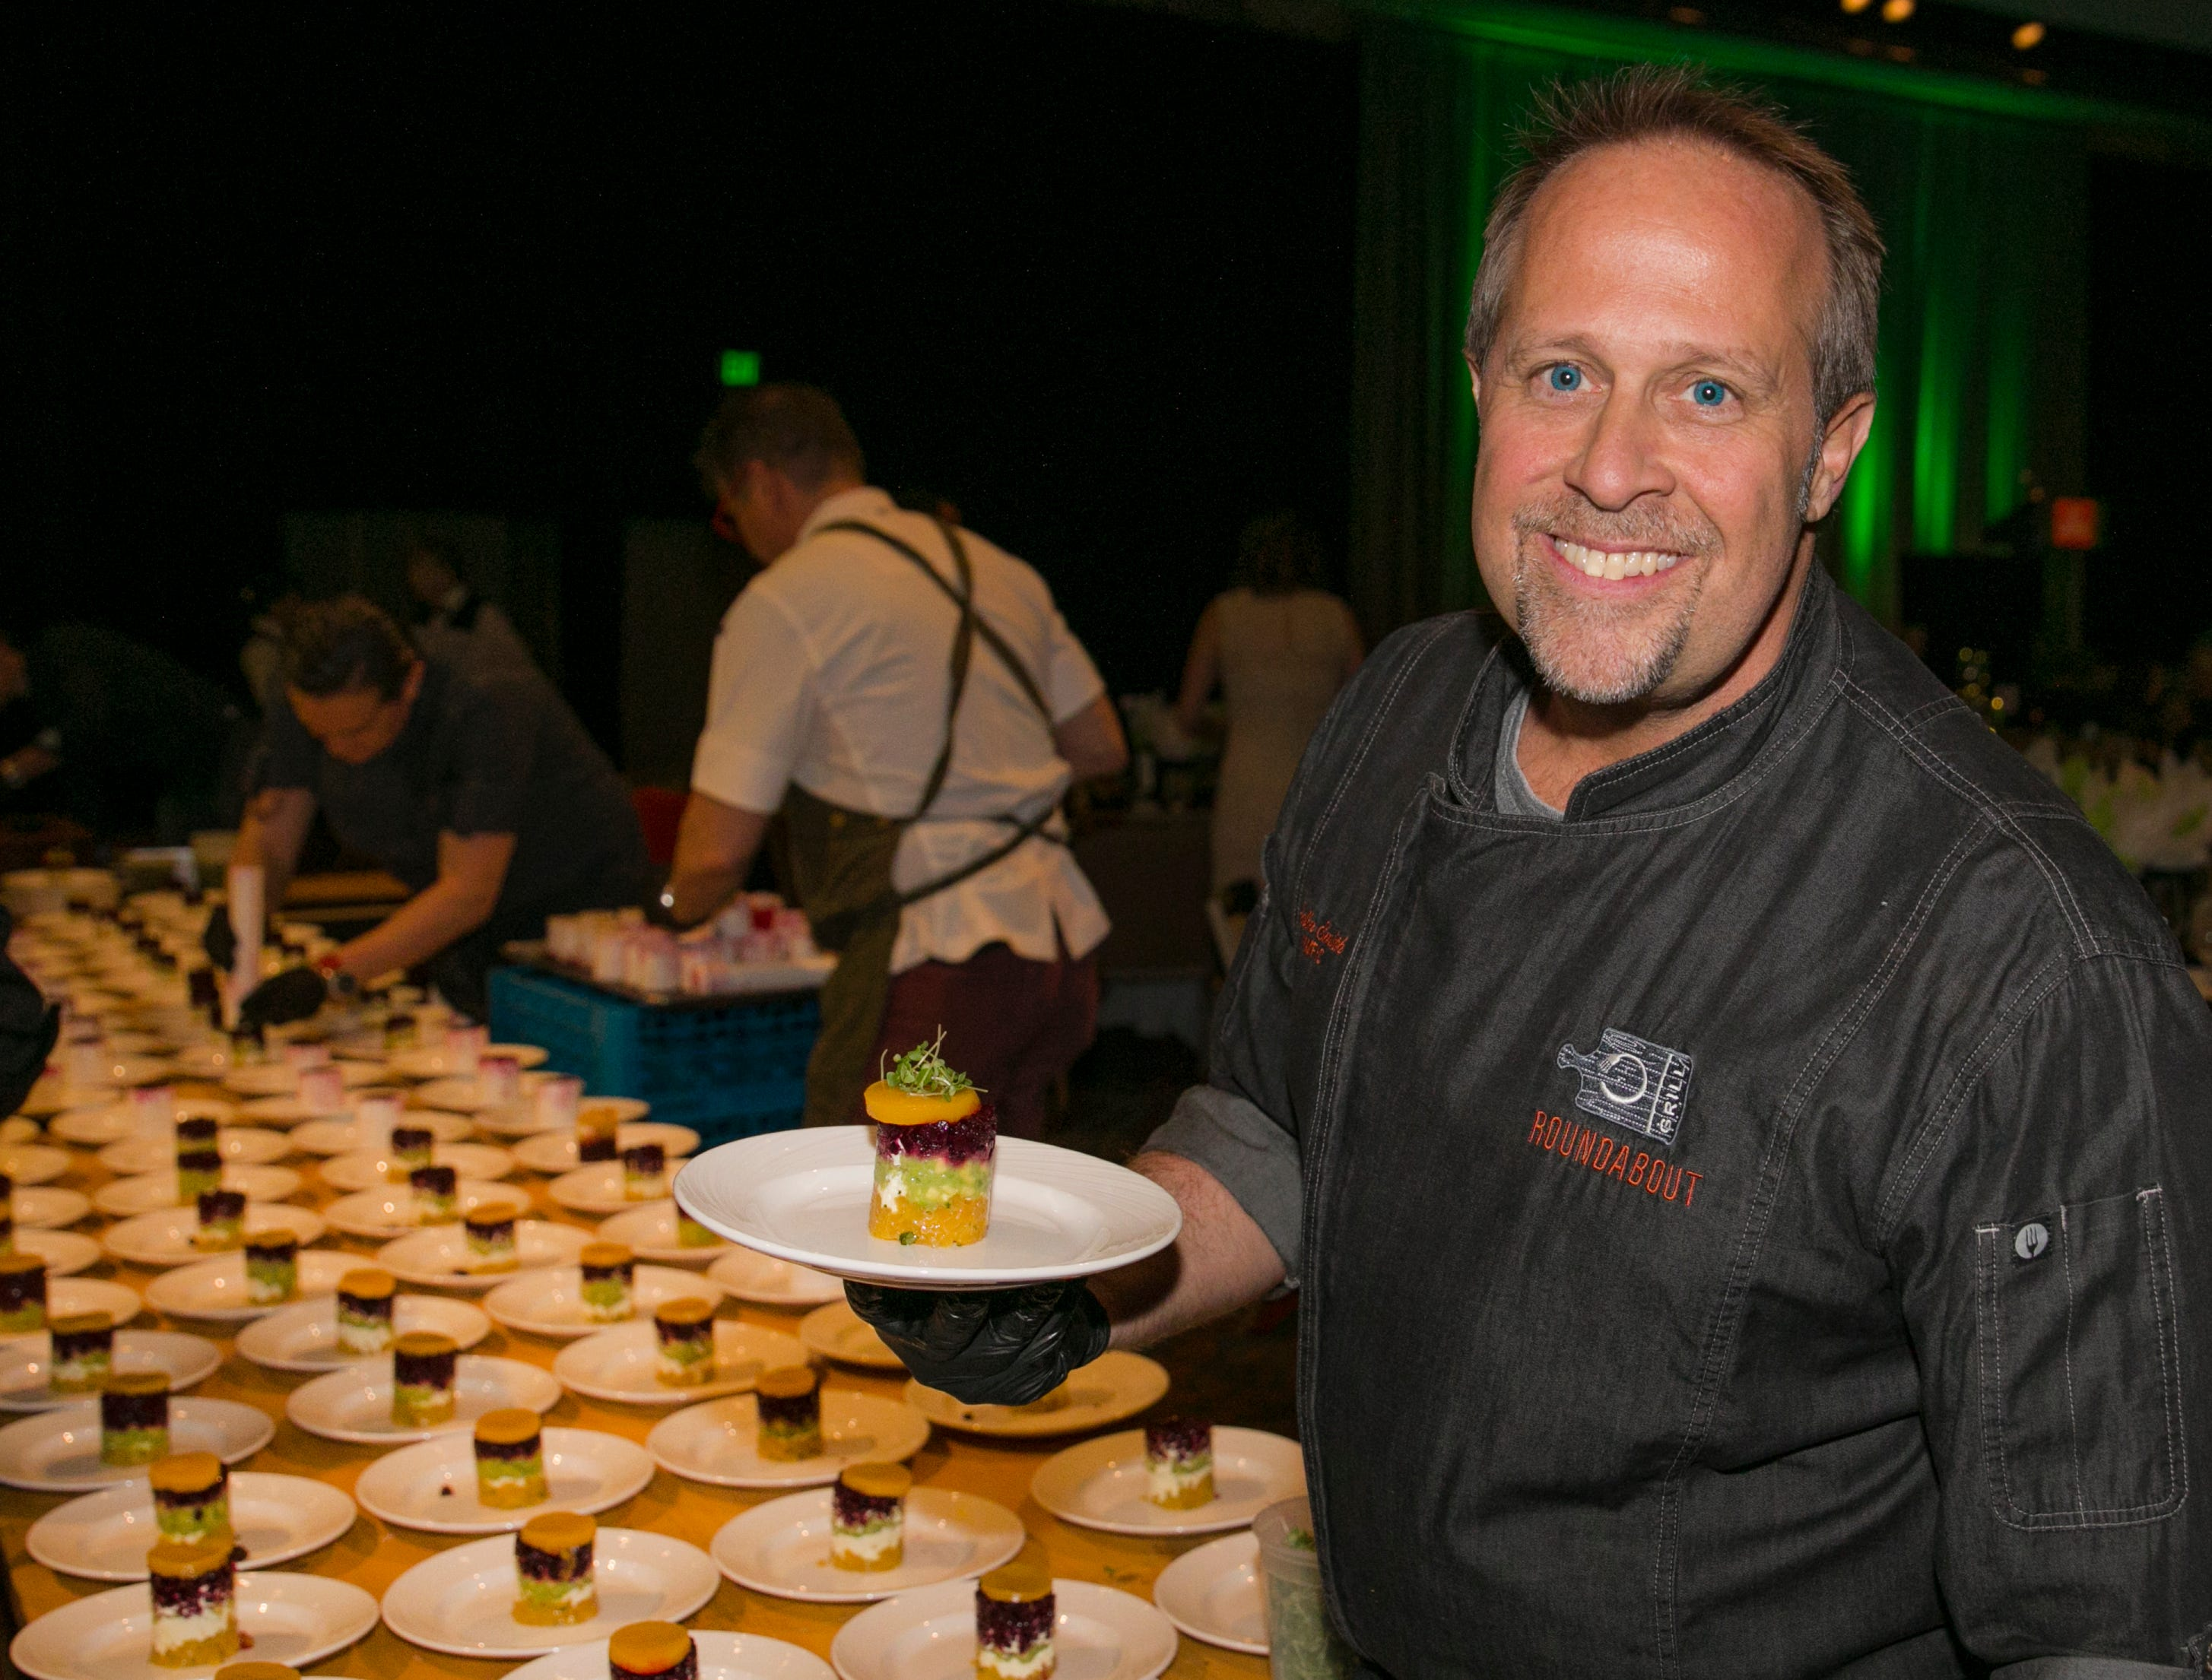 Chef Colin Smith during Big Chefs Big Gala at the Grand Sierra Resort in Reno, Nevada on Saturday, April 13, 2019.